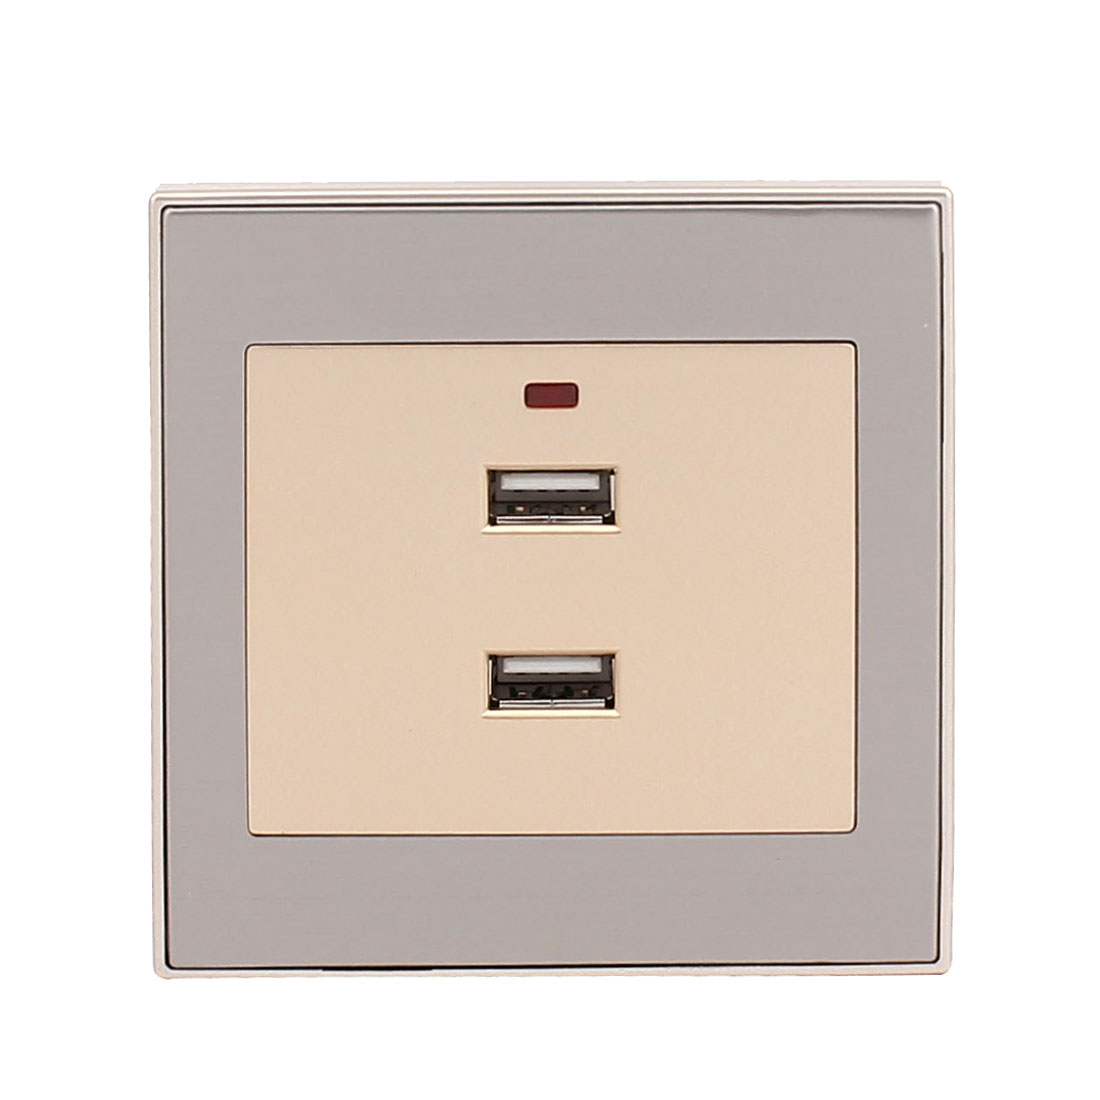 AC 220V-250V 2 USB Ports Charger DC 5V 2100mA Red Lamp Power Source Wall Plate